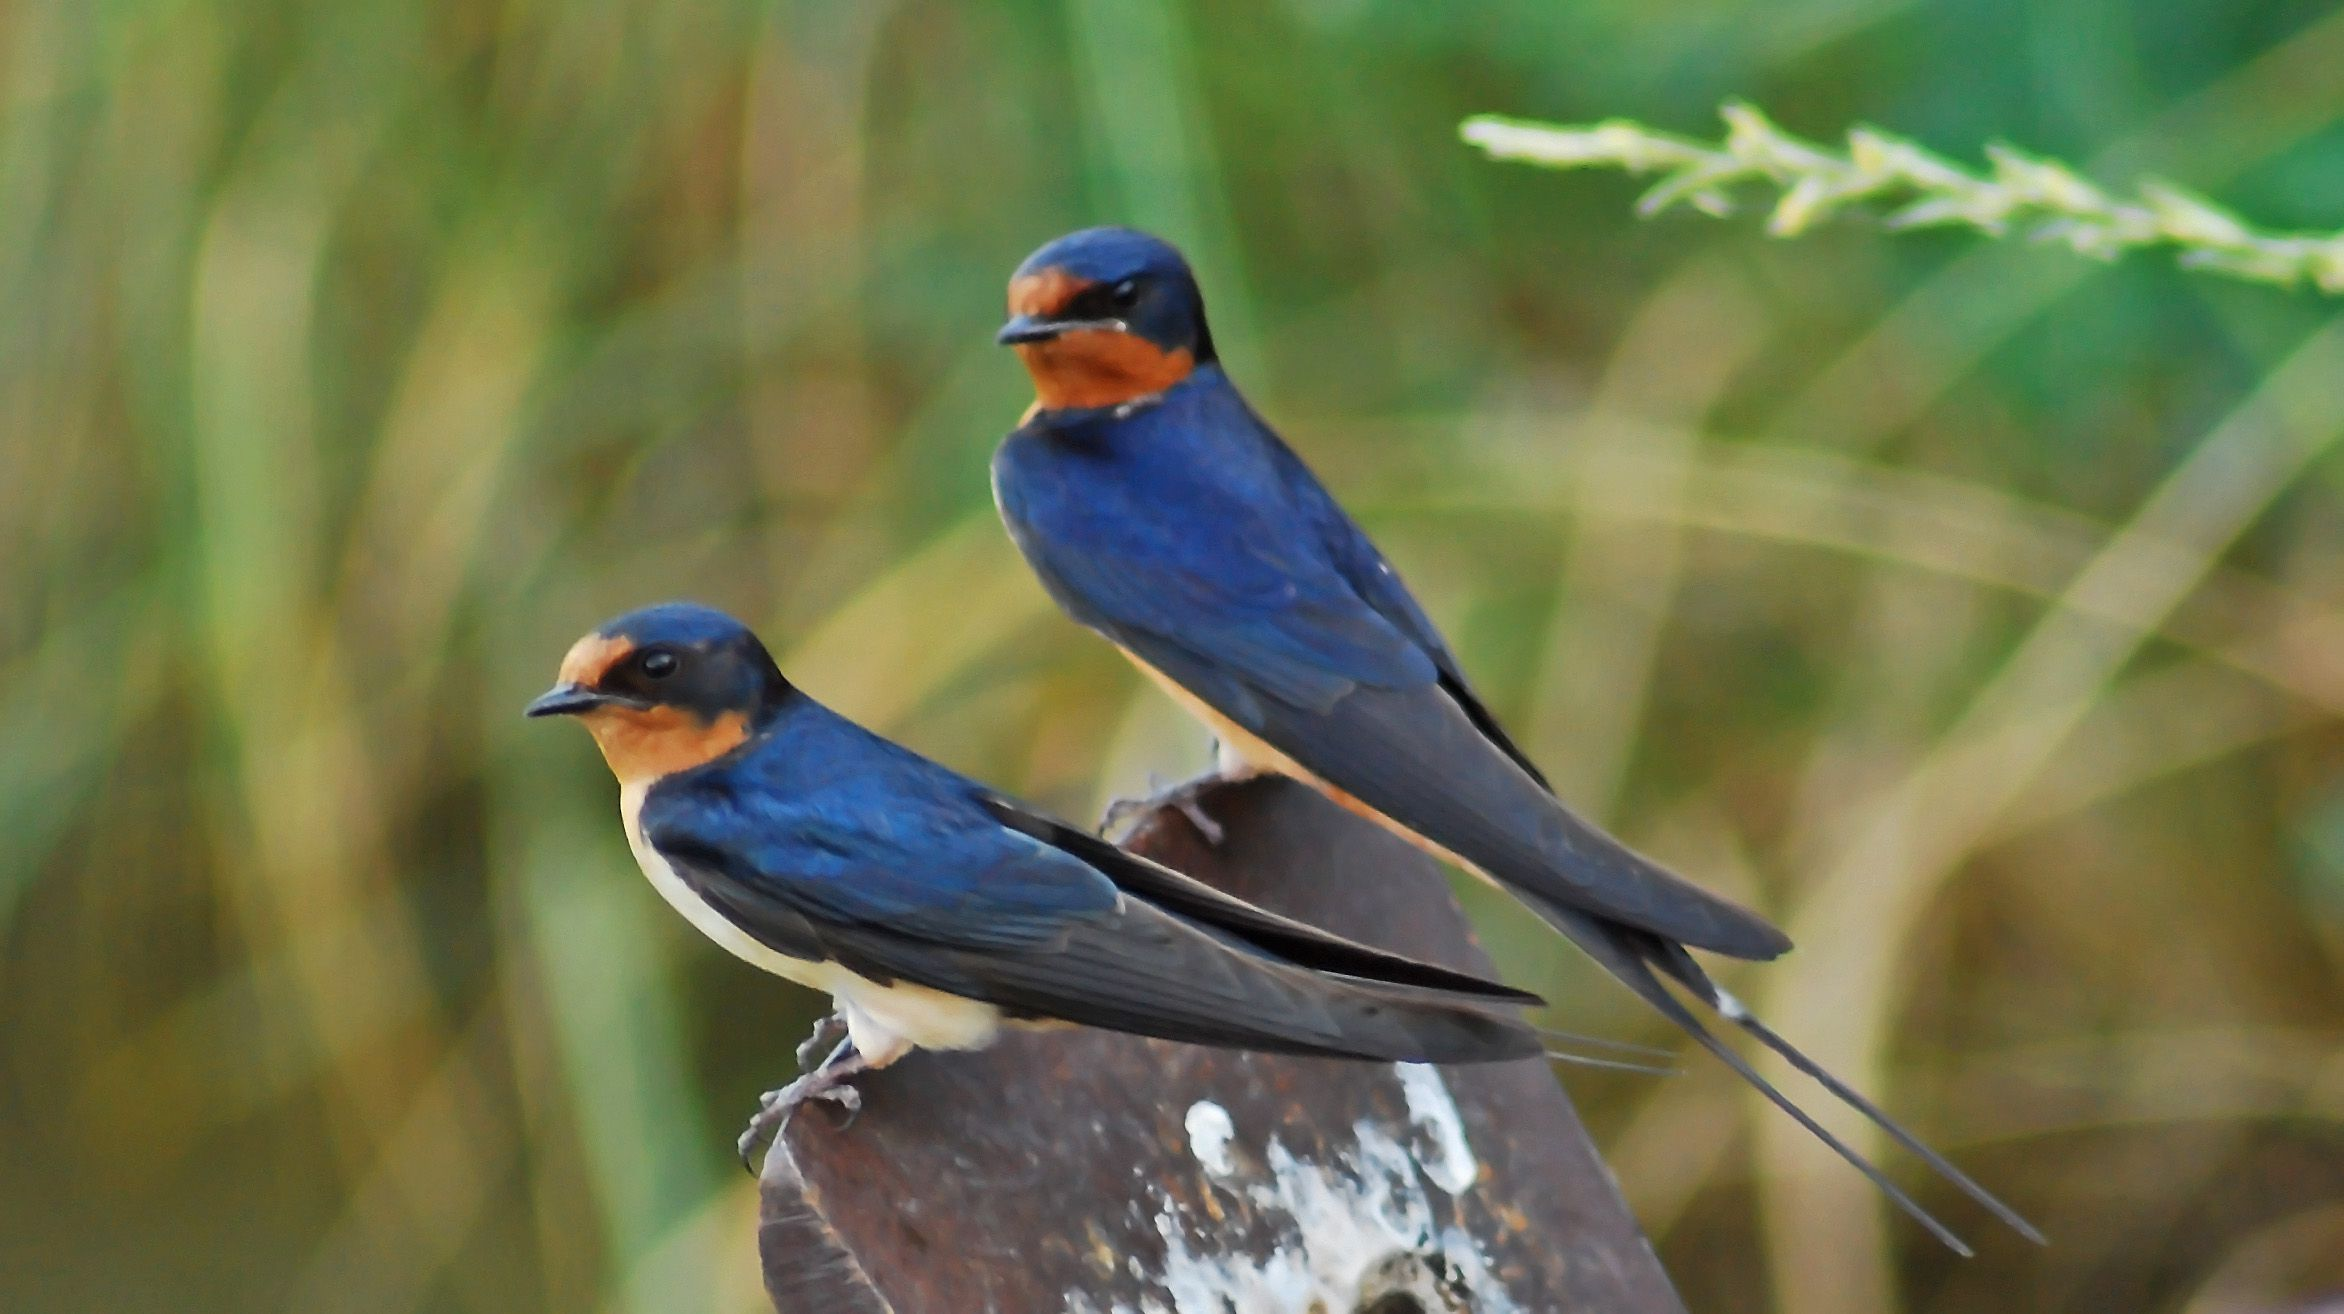 معلومات عن طائر خطاف المخازن Barn-swallows-from-the-first-brood-and-even-unrelated-birds-often-help-in-rearing-of-the-hatchlings.-Chicks-are-ready-to-leave-the-nest-15-to-27-days-after-hatching.